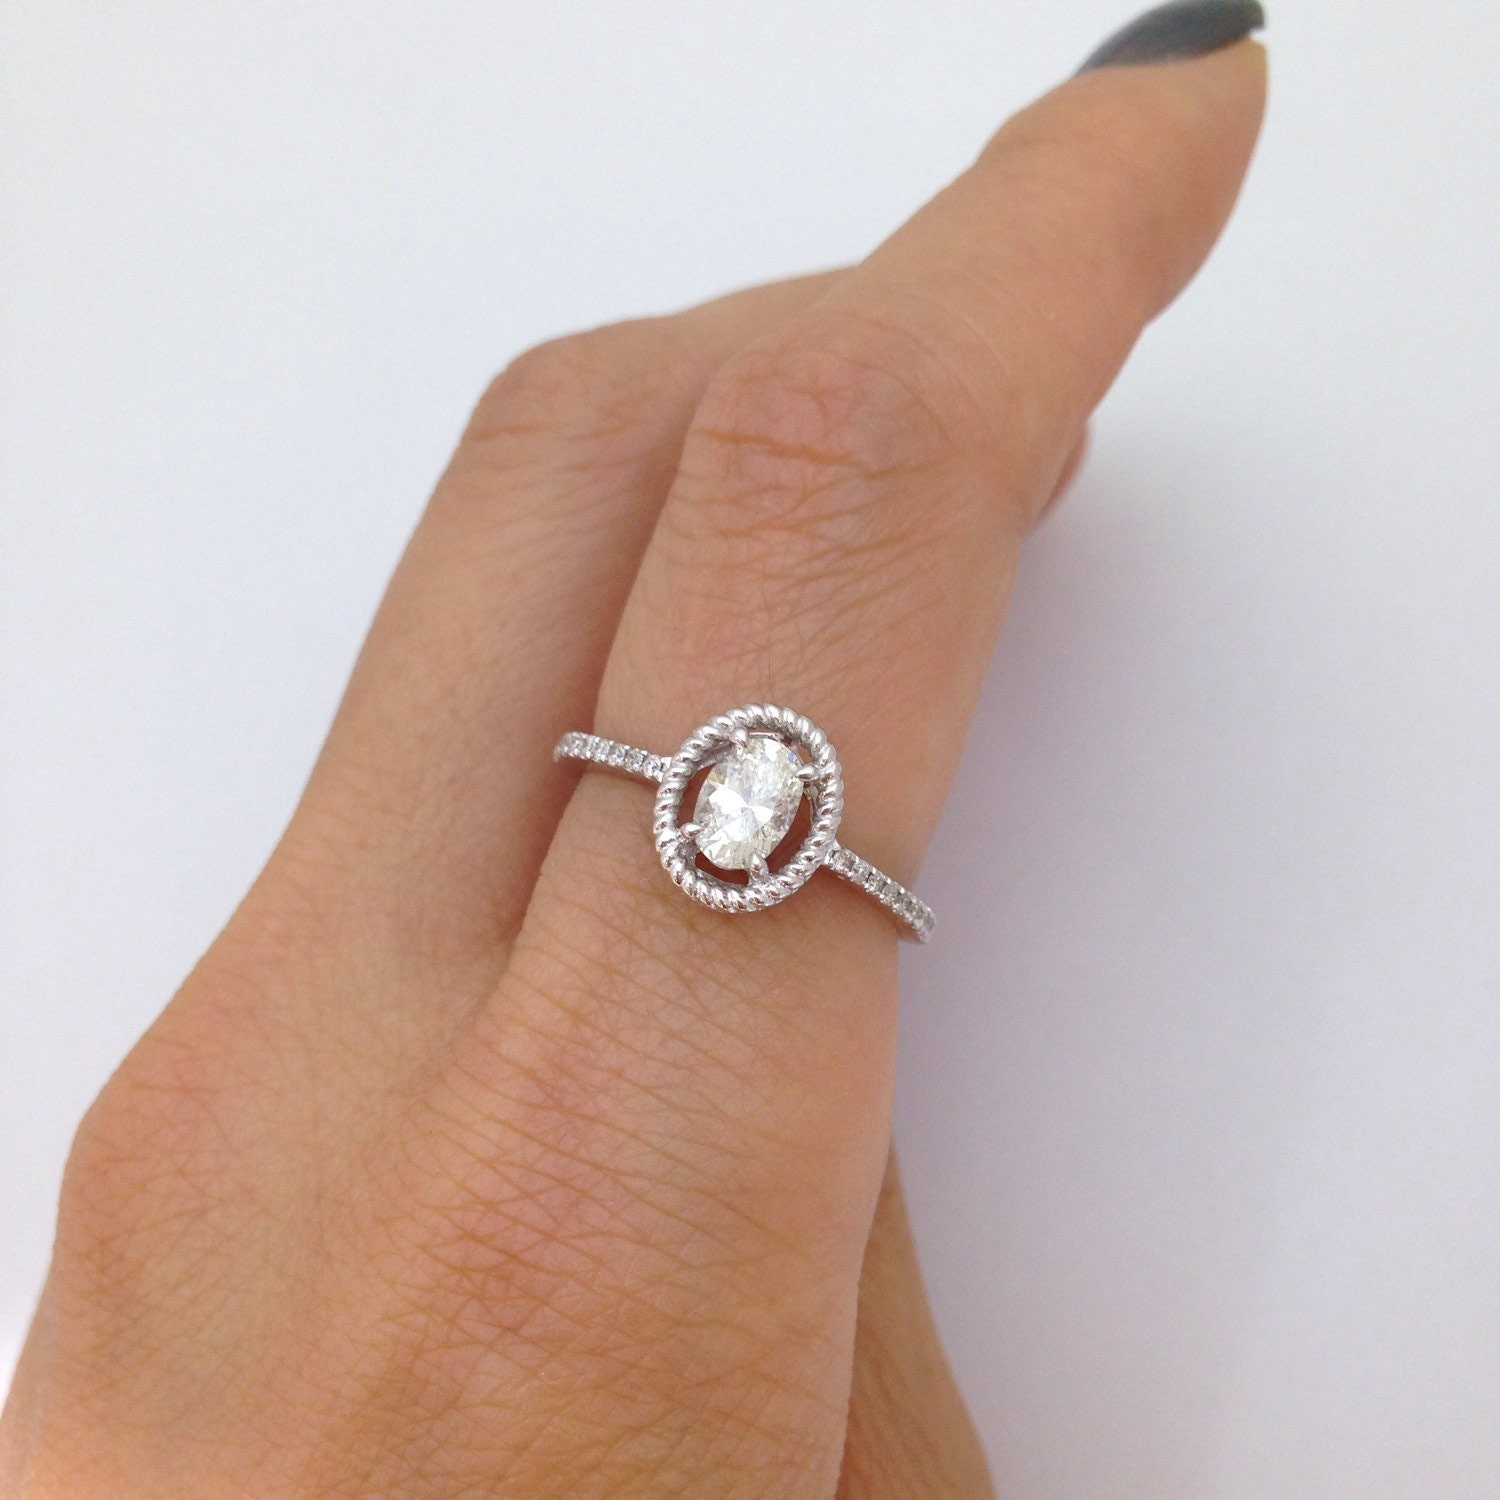 3f031a812b835 0.50 Carat Oval Diamond Engagement Ring VS2 H - Simple Rope ...